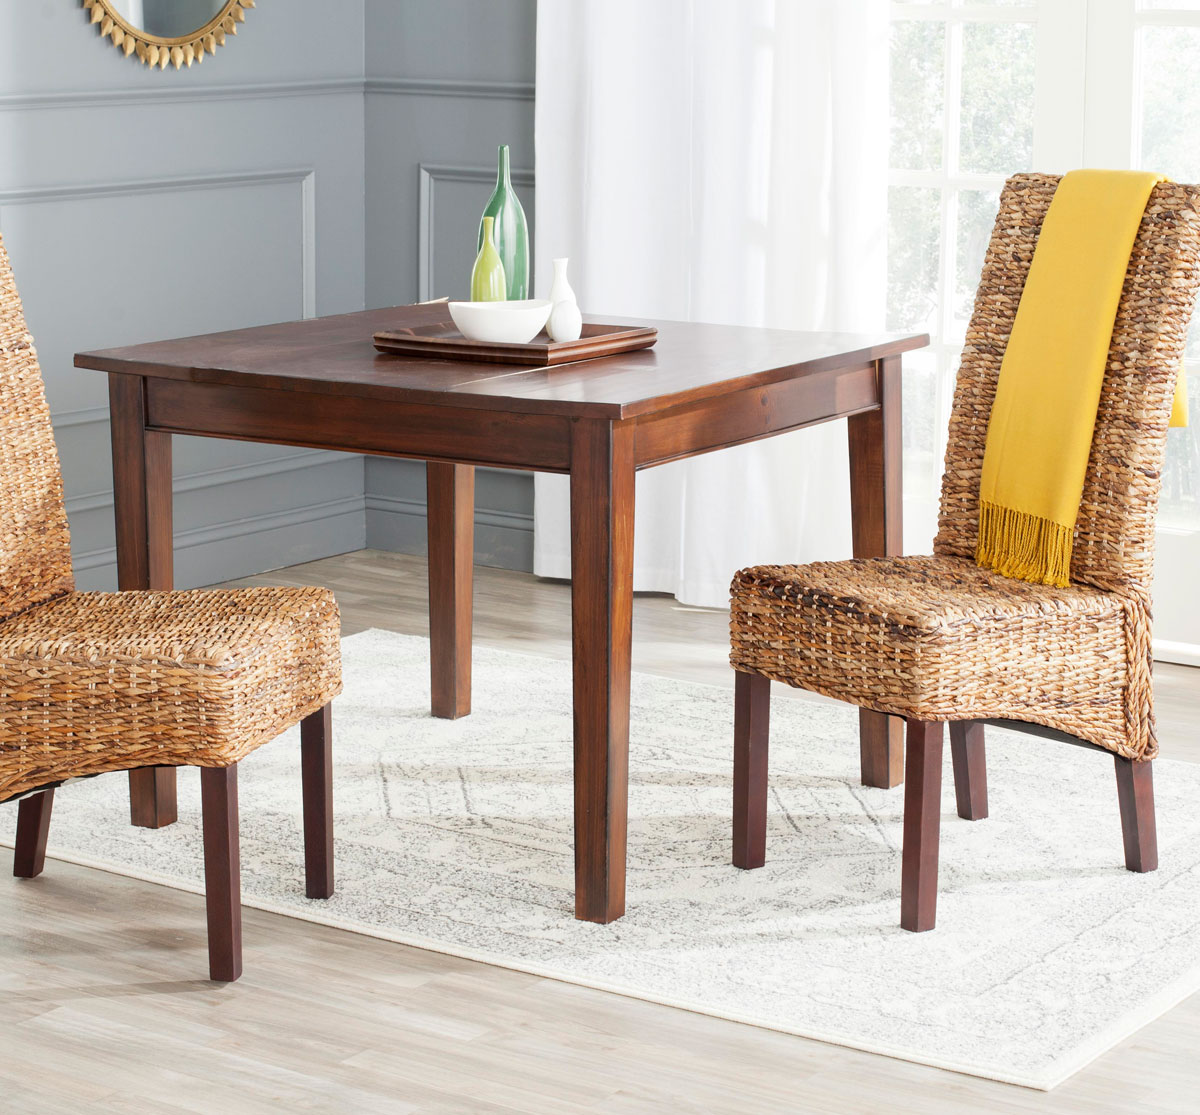 AMH6507C Dining Tables - Furniture by Safavieh